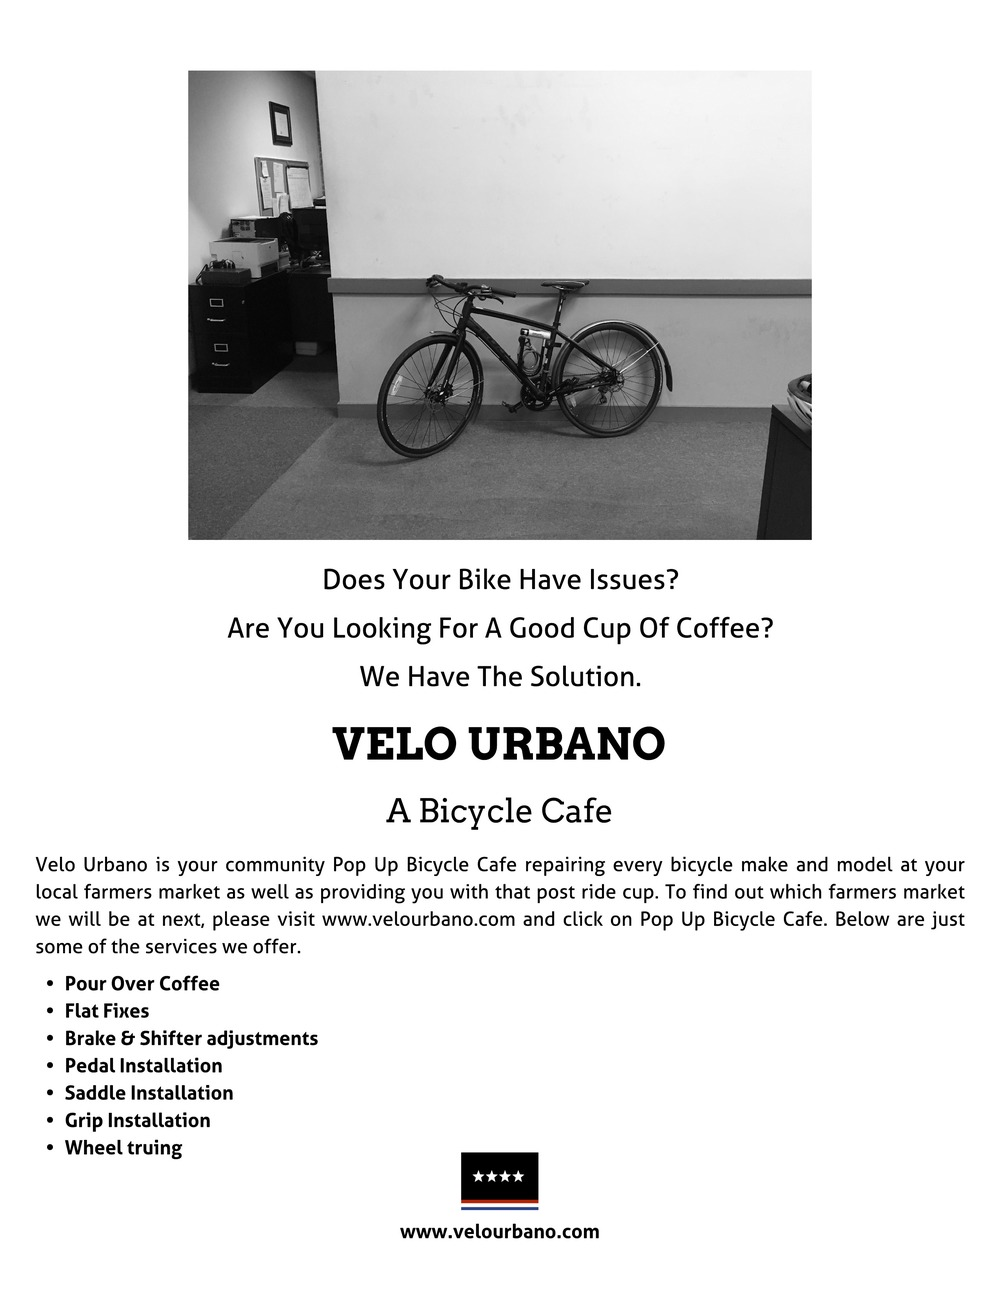 VeloUrbanoFlyer-W_BikeCafe.jpeg